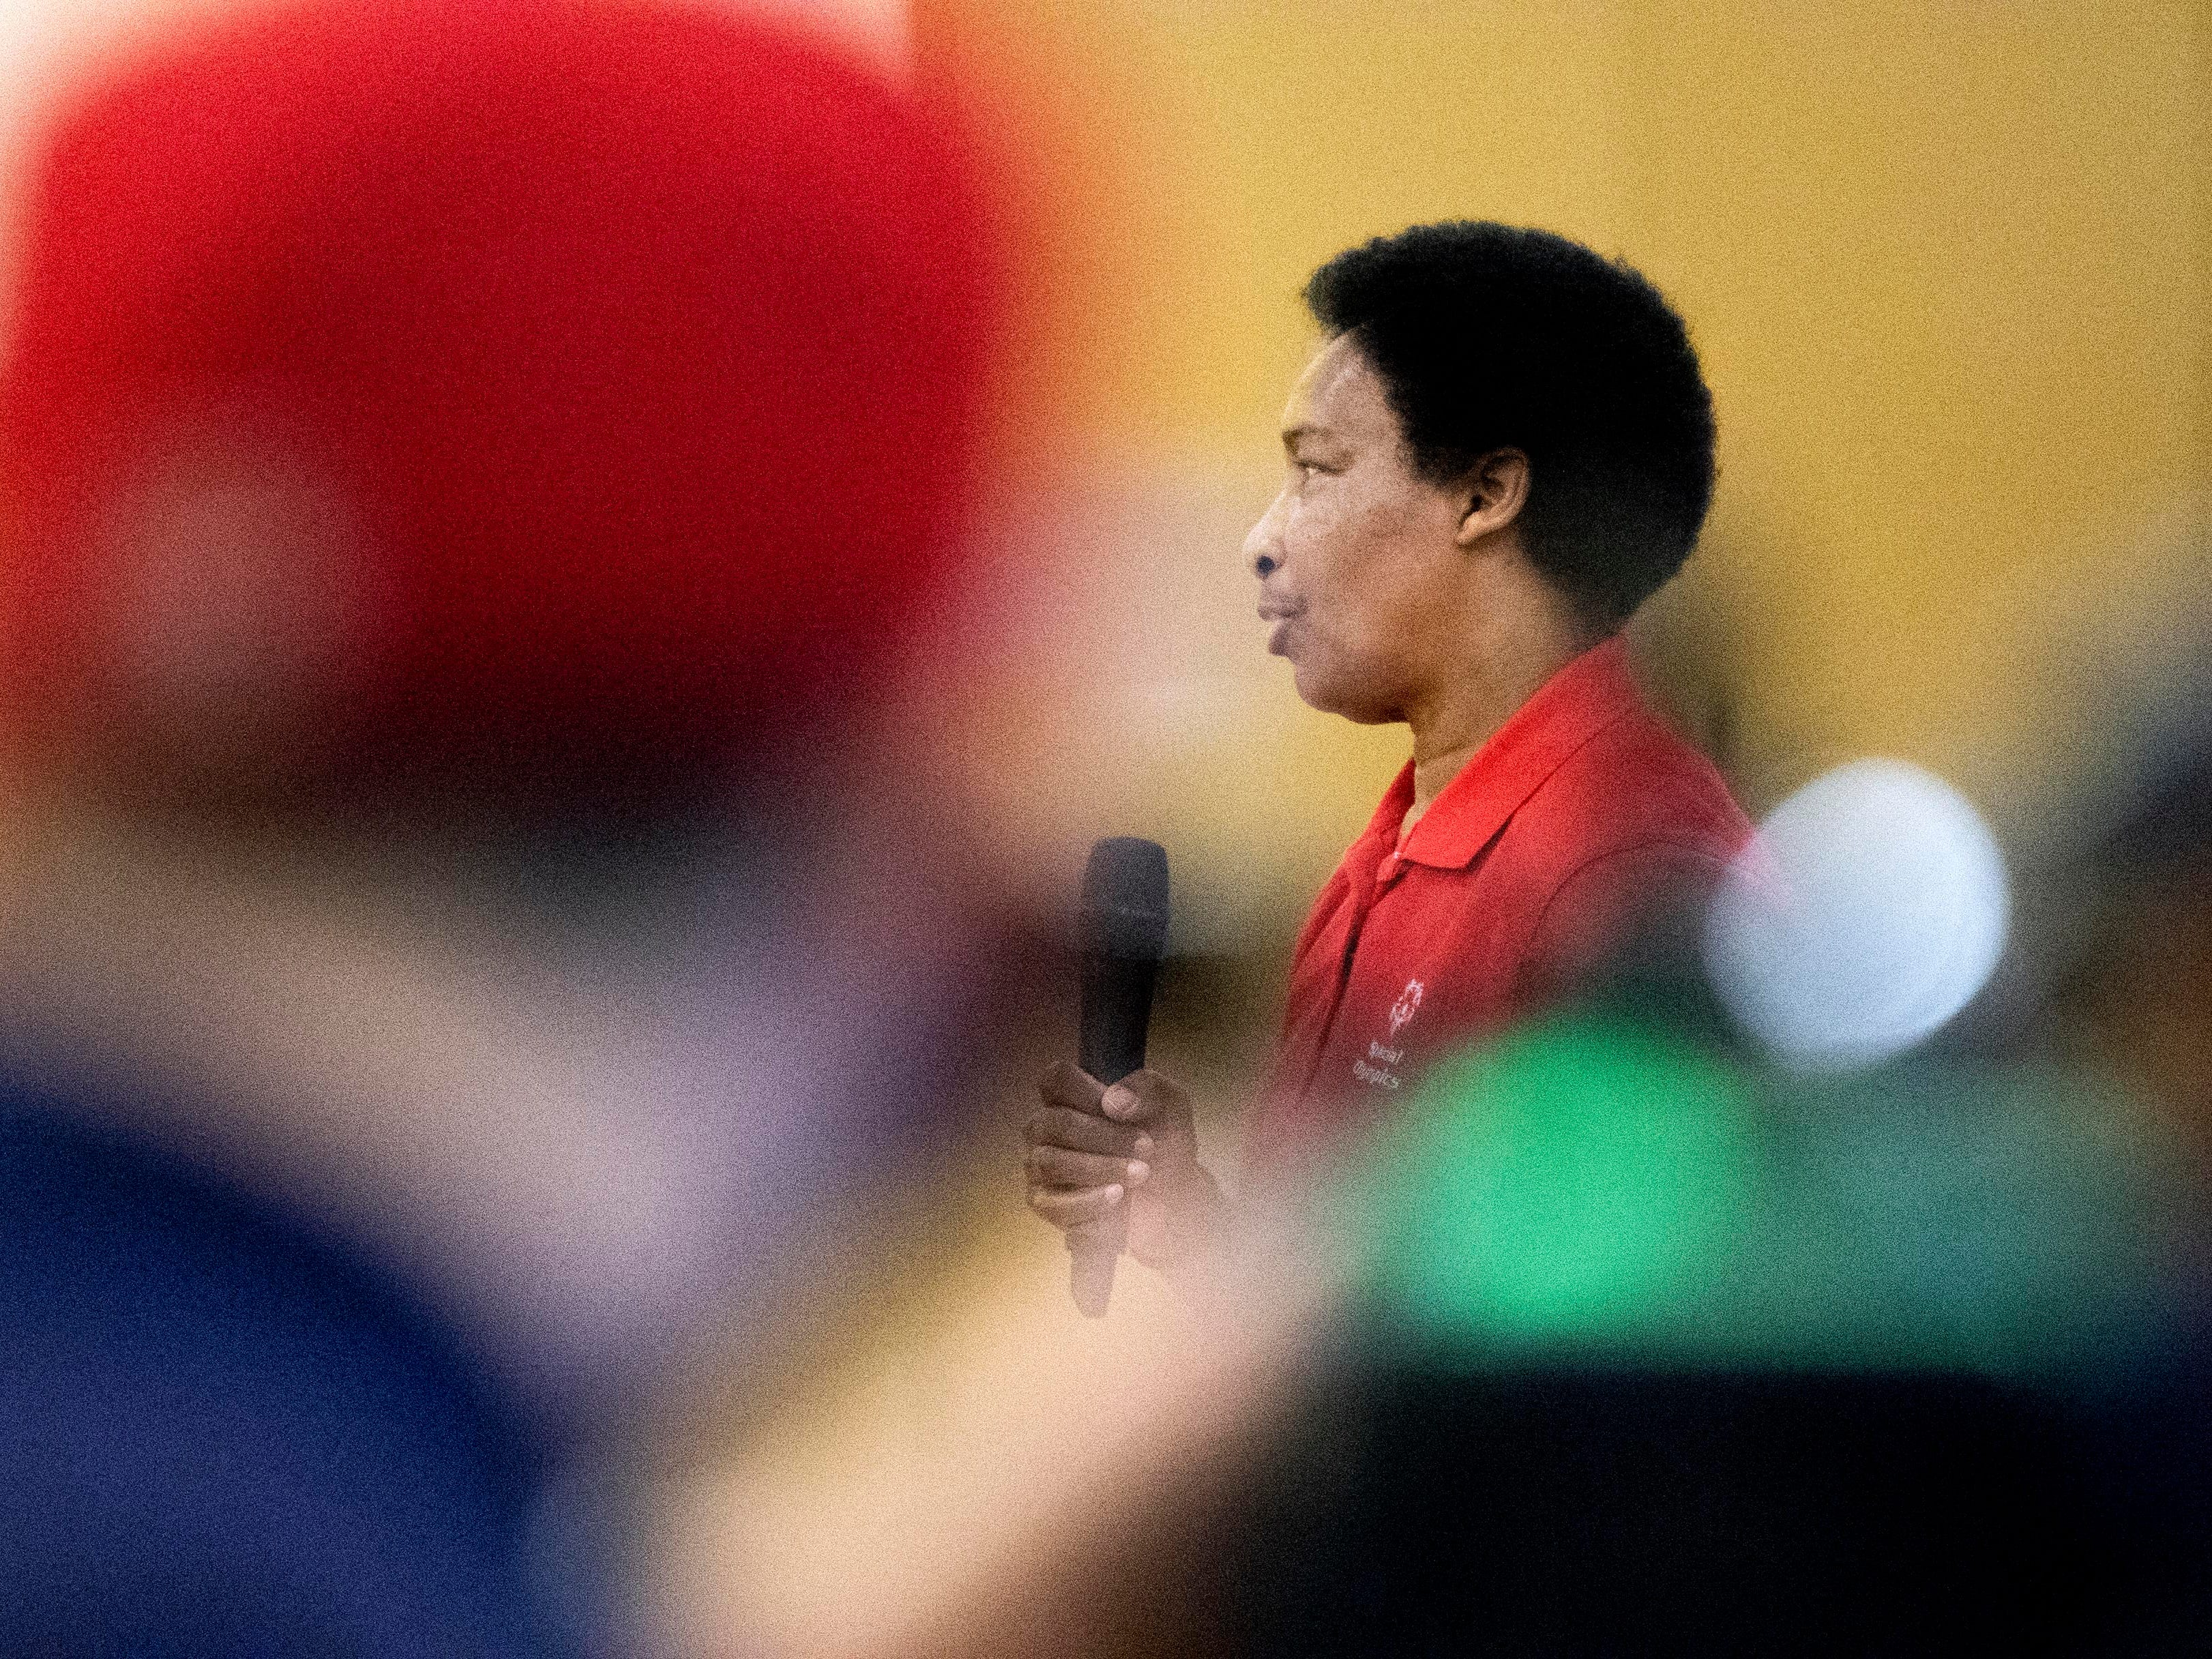 Loretta Claiborne, a Special Olympic gold medalist and York-native, speaks to teenagers at Crispus Attucks in York, Friday, Nov. 30, 2018. Film crews ESPN were filming a documentary on Claiborne for part of a partnership with Special Olympics, profiling 50 athletes to celebrate 50 years of Special Olympics. The documentary on Claiborne will air in Dec. 2018.